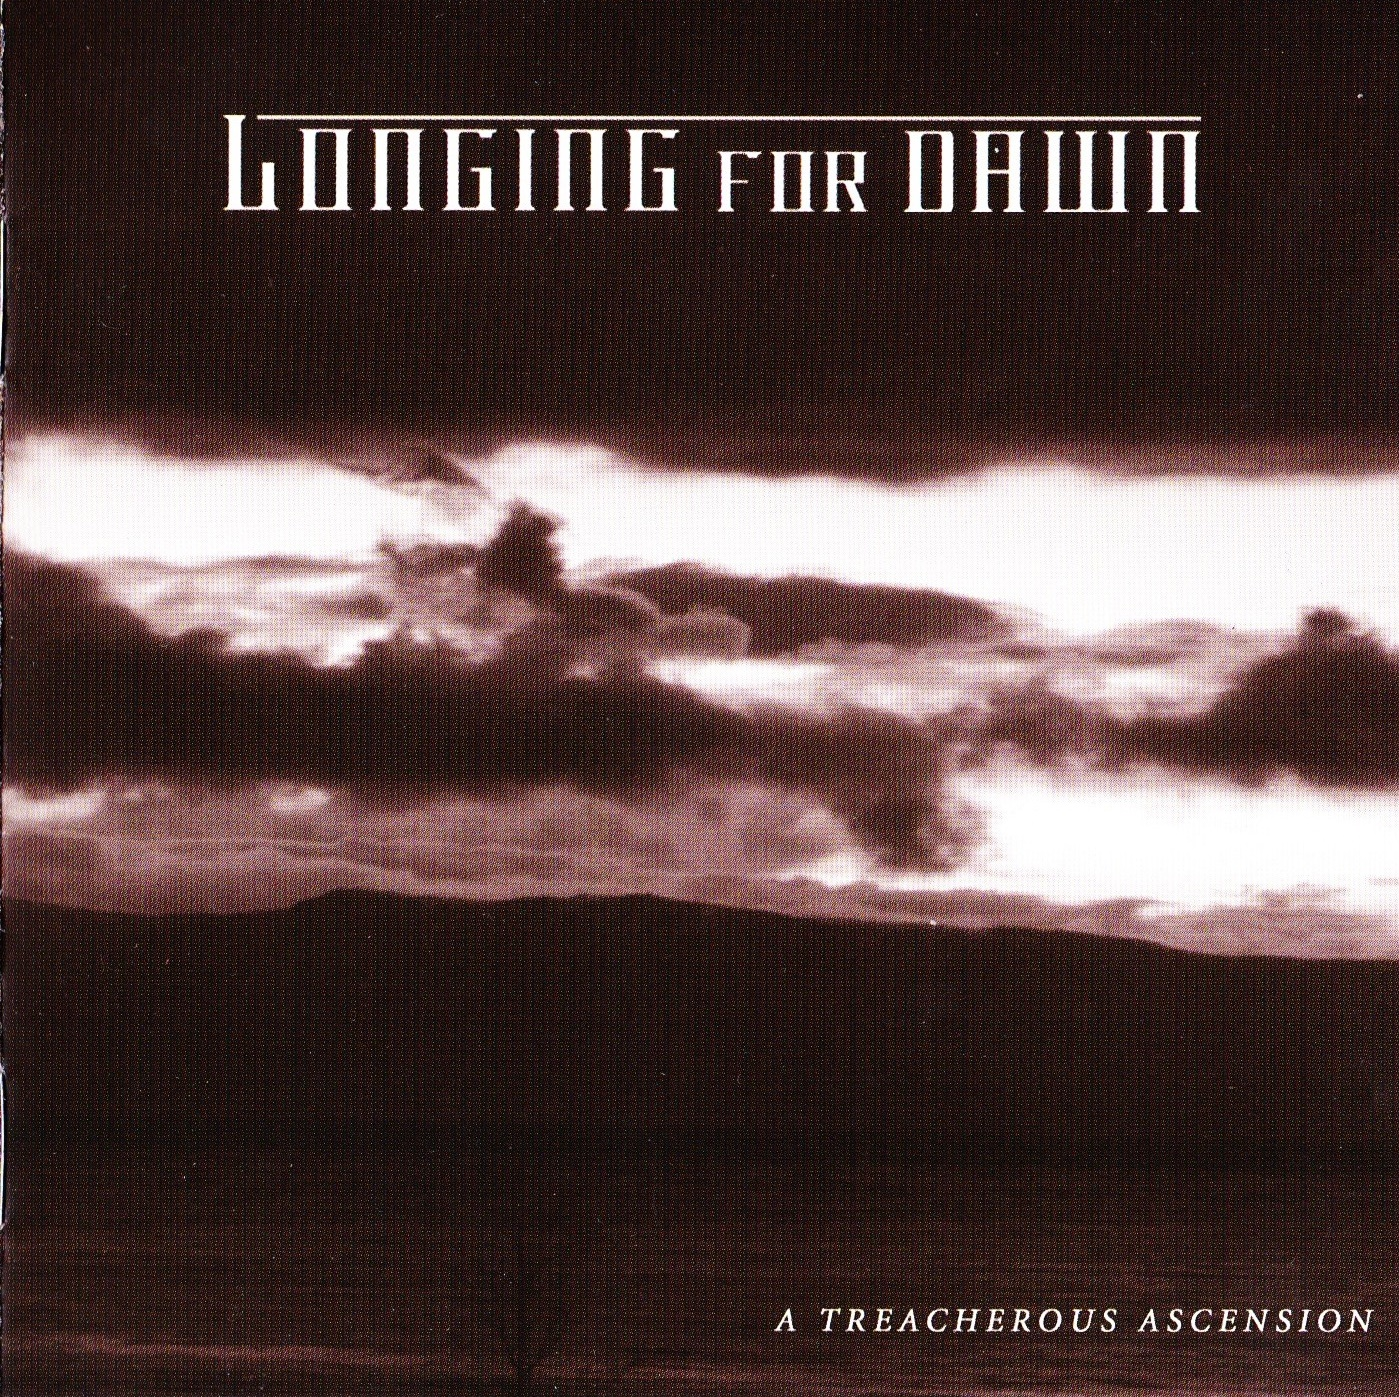 Longing for Dawn — A Treacherous Ascension (2007)